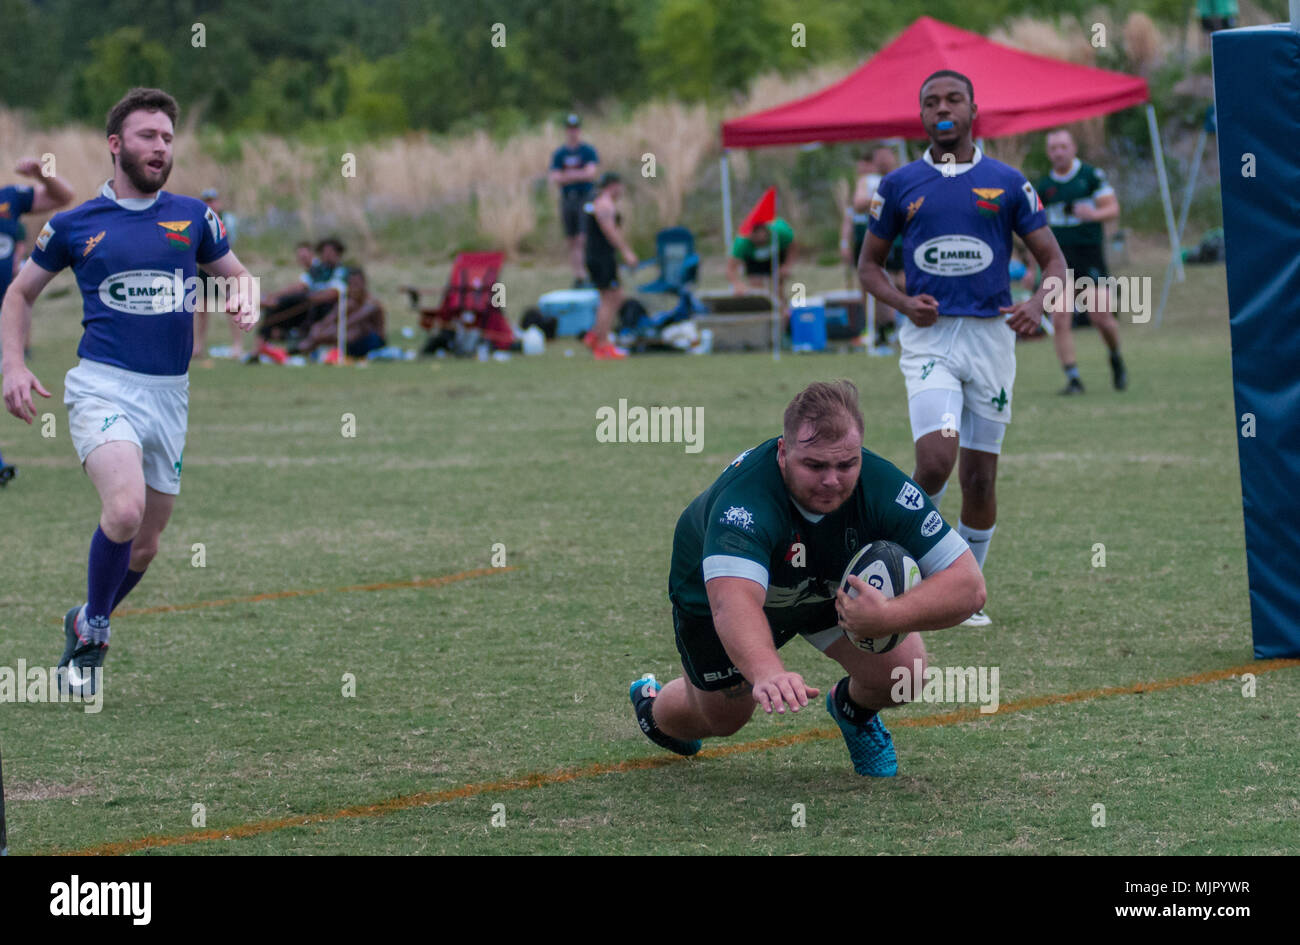 Southern Pines, N.C, USA. 13th Apr, 2018. May 5, 2018 - Southern Pines, N.C., USA - Southern Pines Big Cones Trey Eason has plenty of room for a try during a match between Southern Pines and New Orleans at the 2018 Division 2 Southern Conference Rugby Championships at the National Athletic Village. Southern Pines defeated New Orleans, 71-12 in the Round of 32 to advance to the Southern Conference Championship tomorrow. Credit: Timothy L. Hale/ZUMA Wire/Alamy Live News - Stock Image